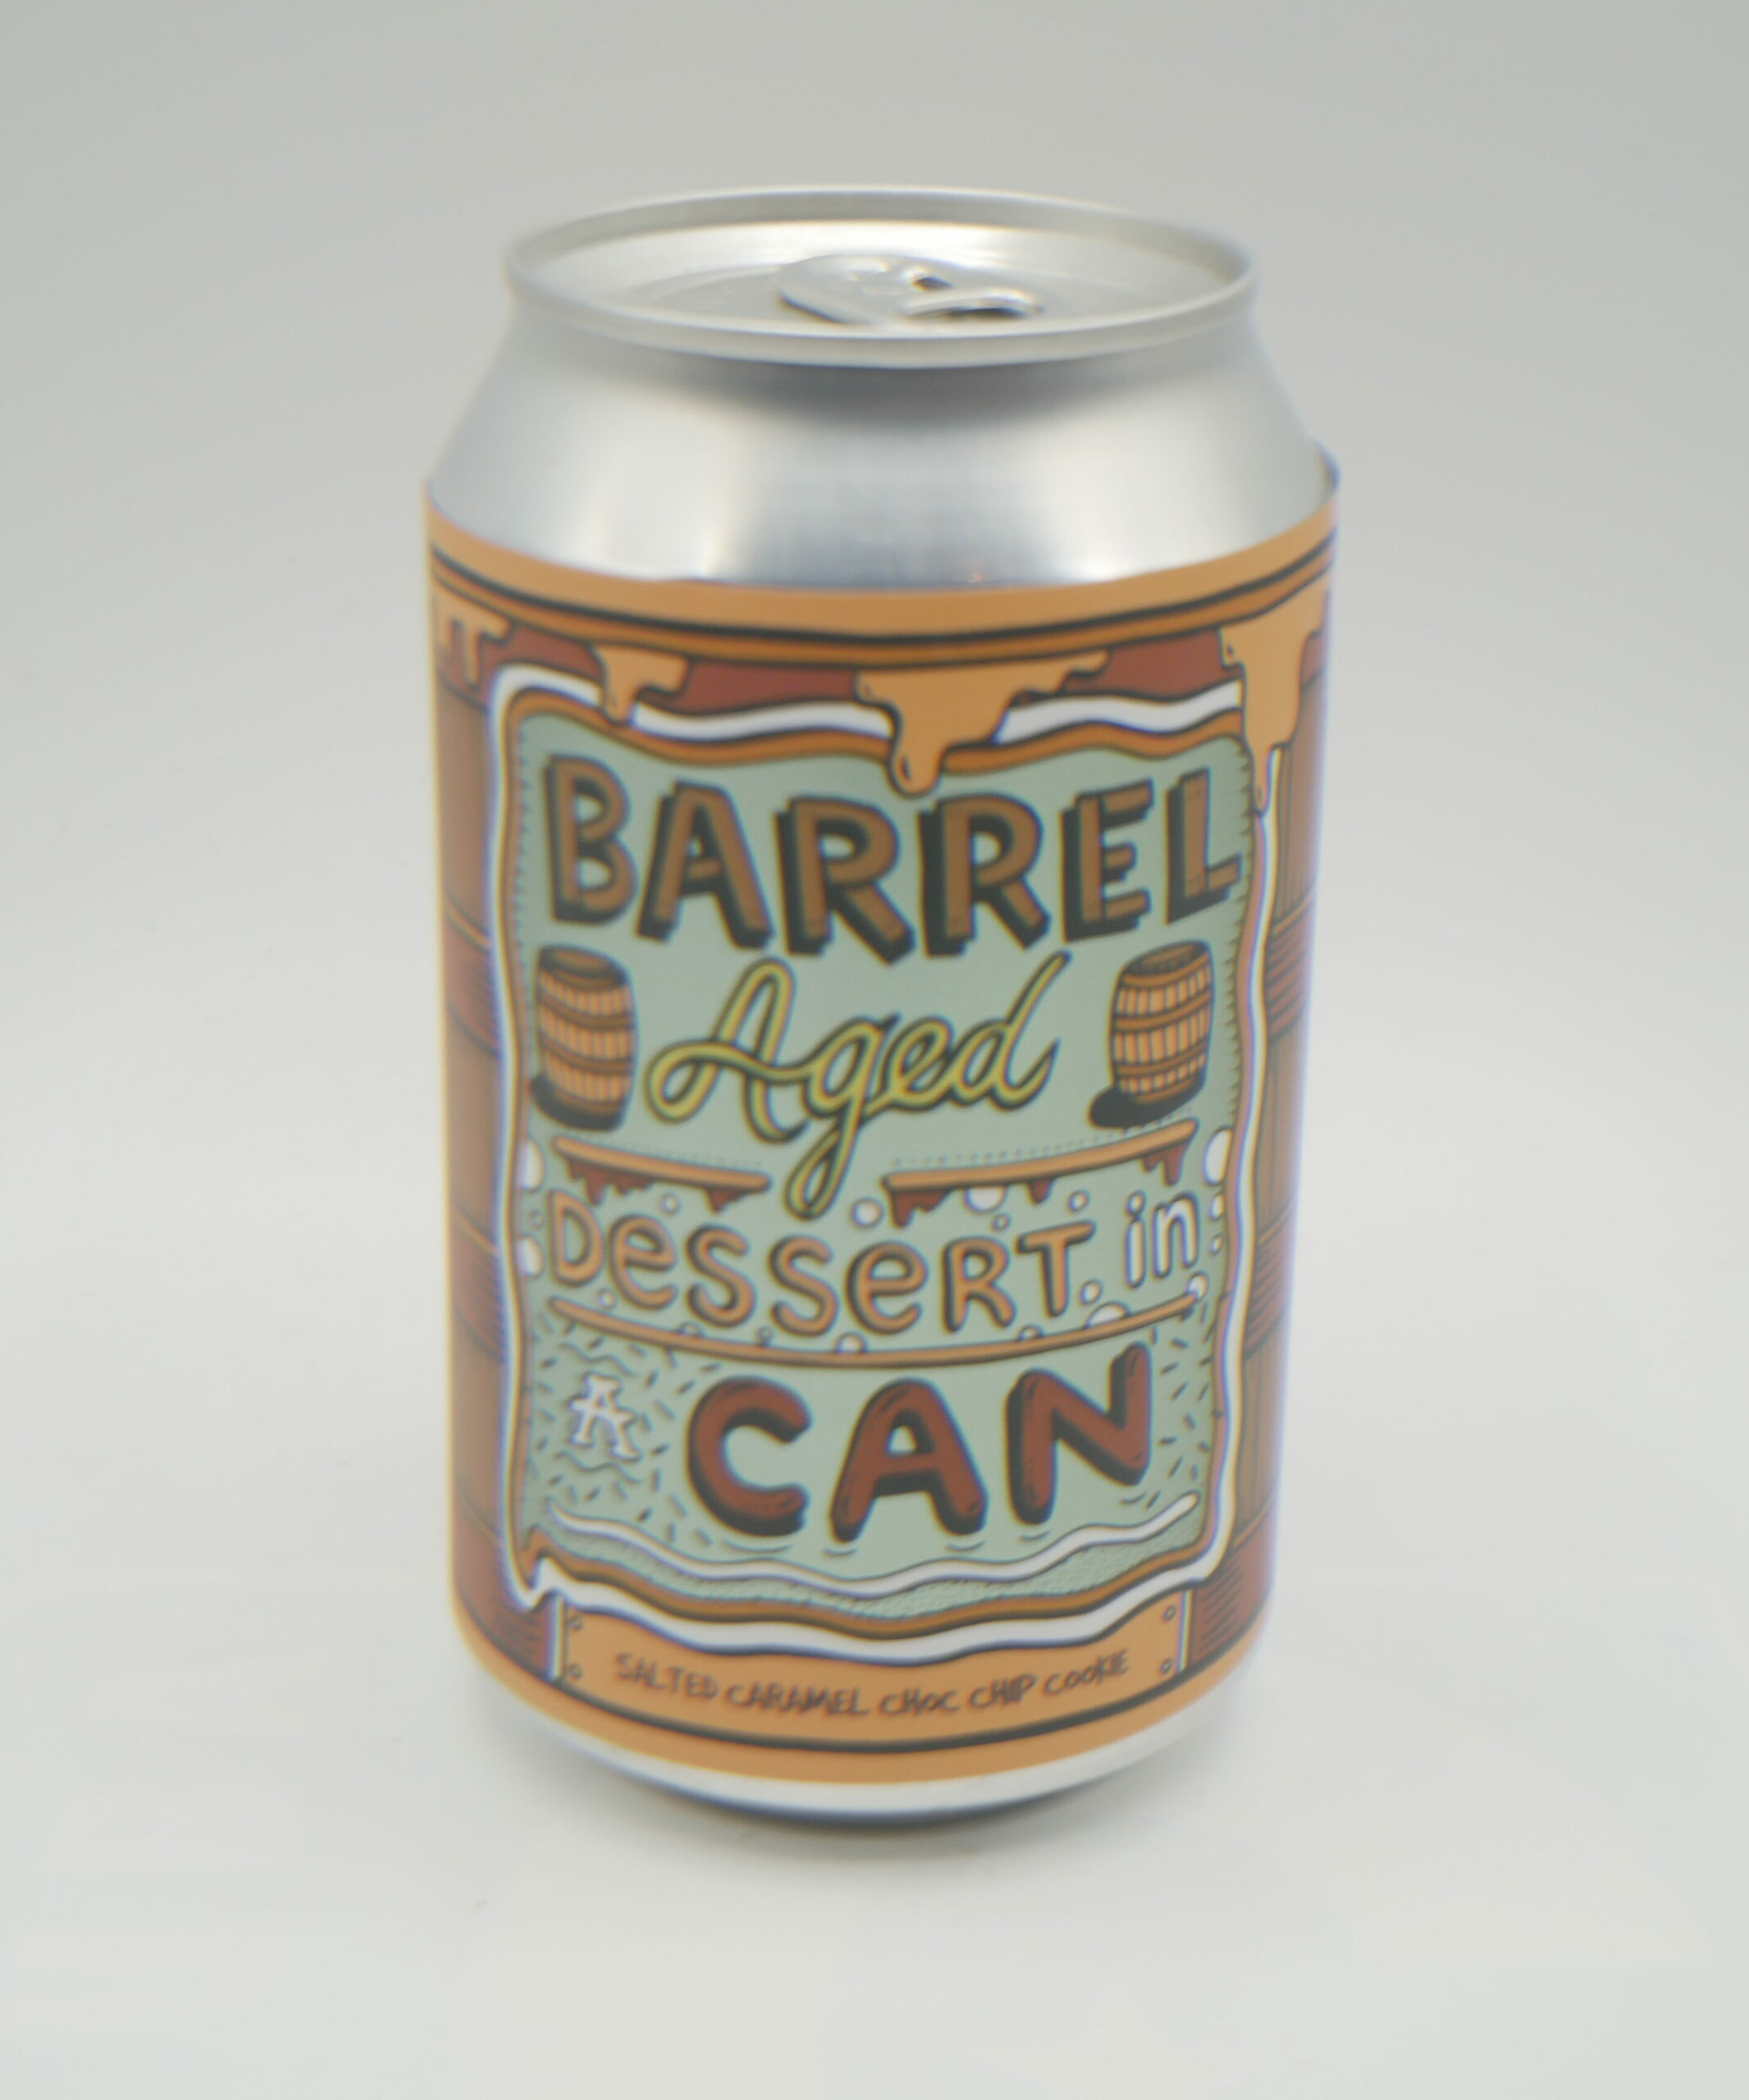 Image Barrel aged in dessert in a can salted caramel choc chip cookie